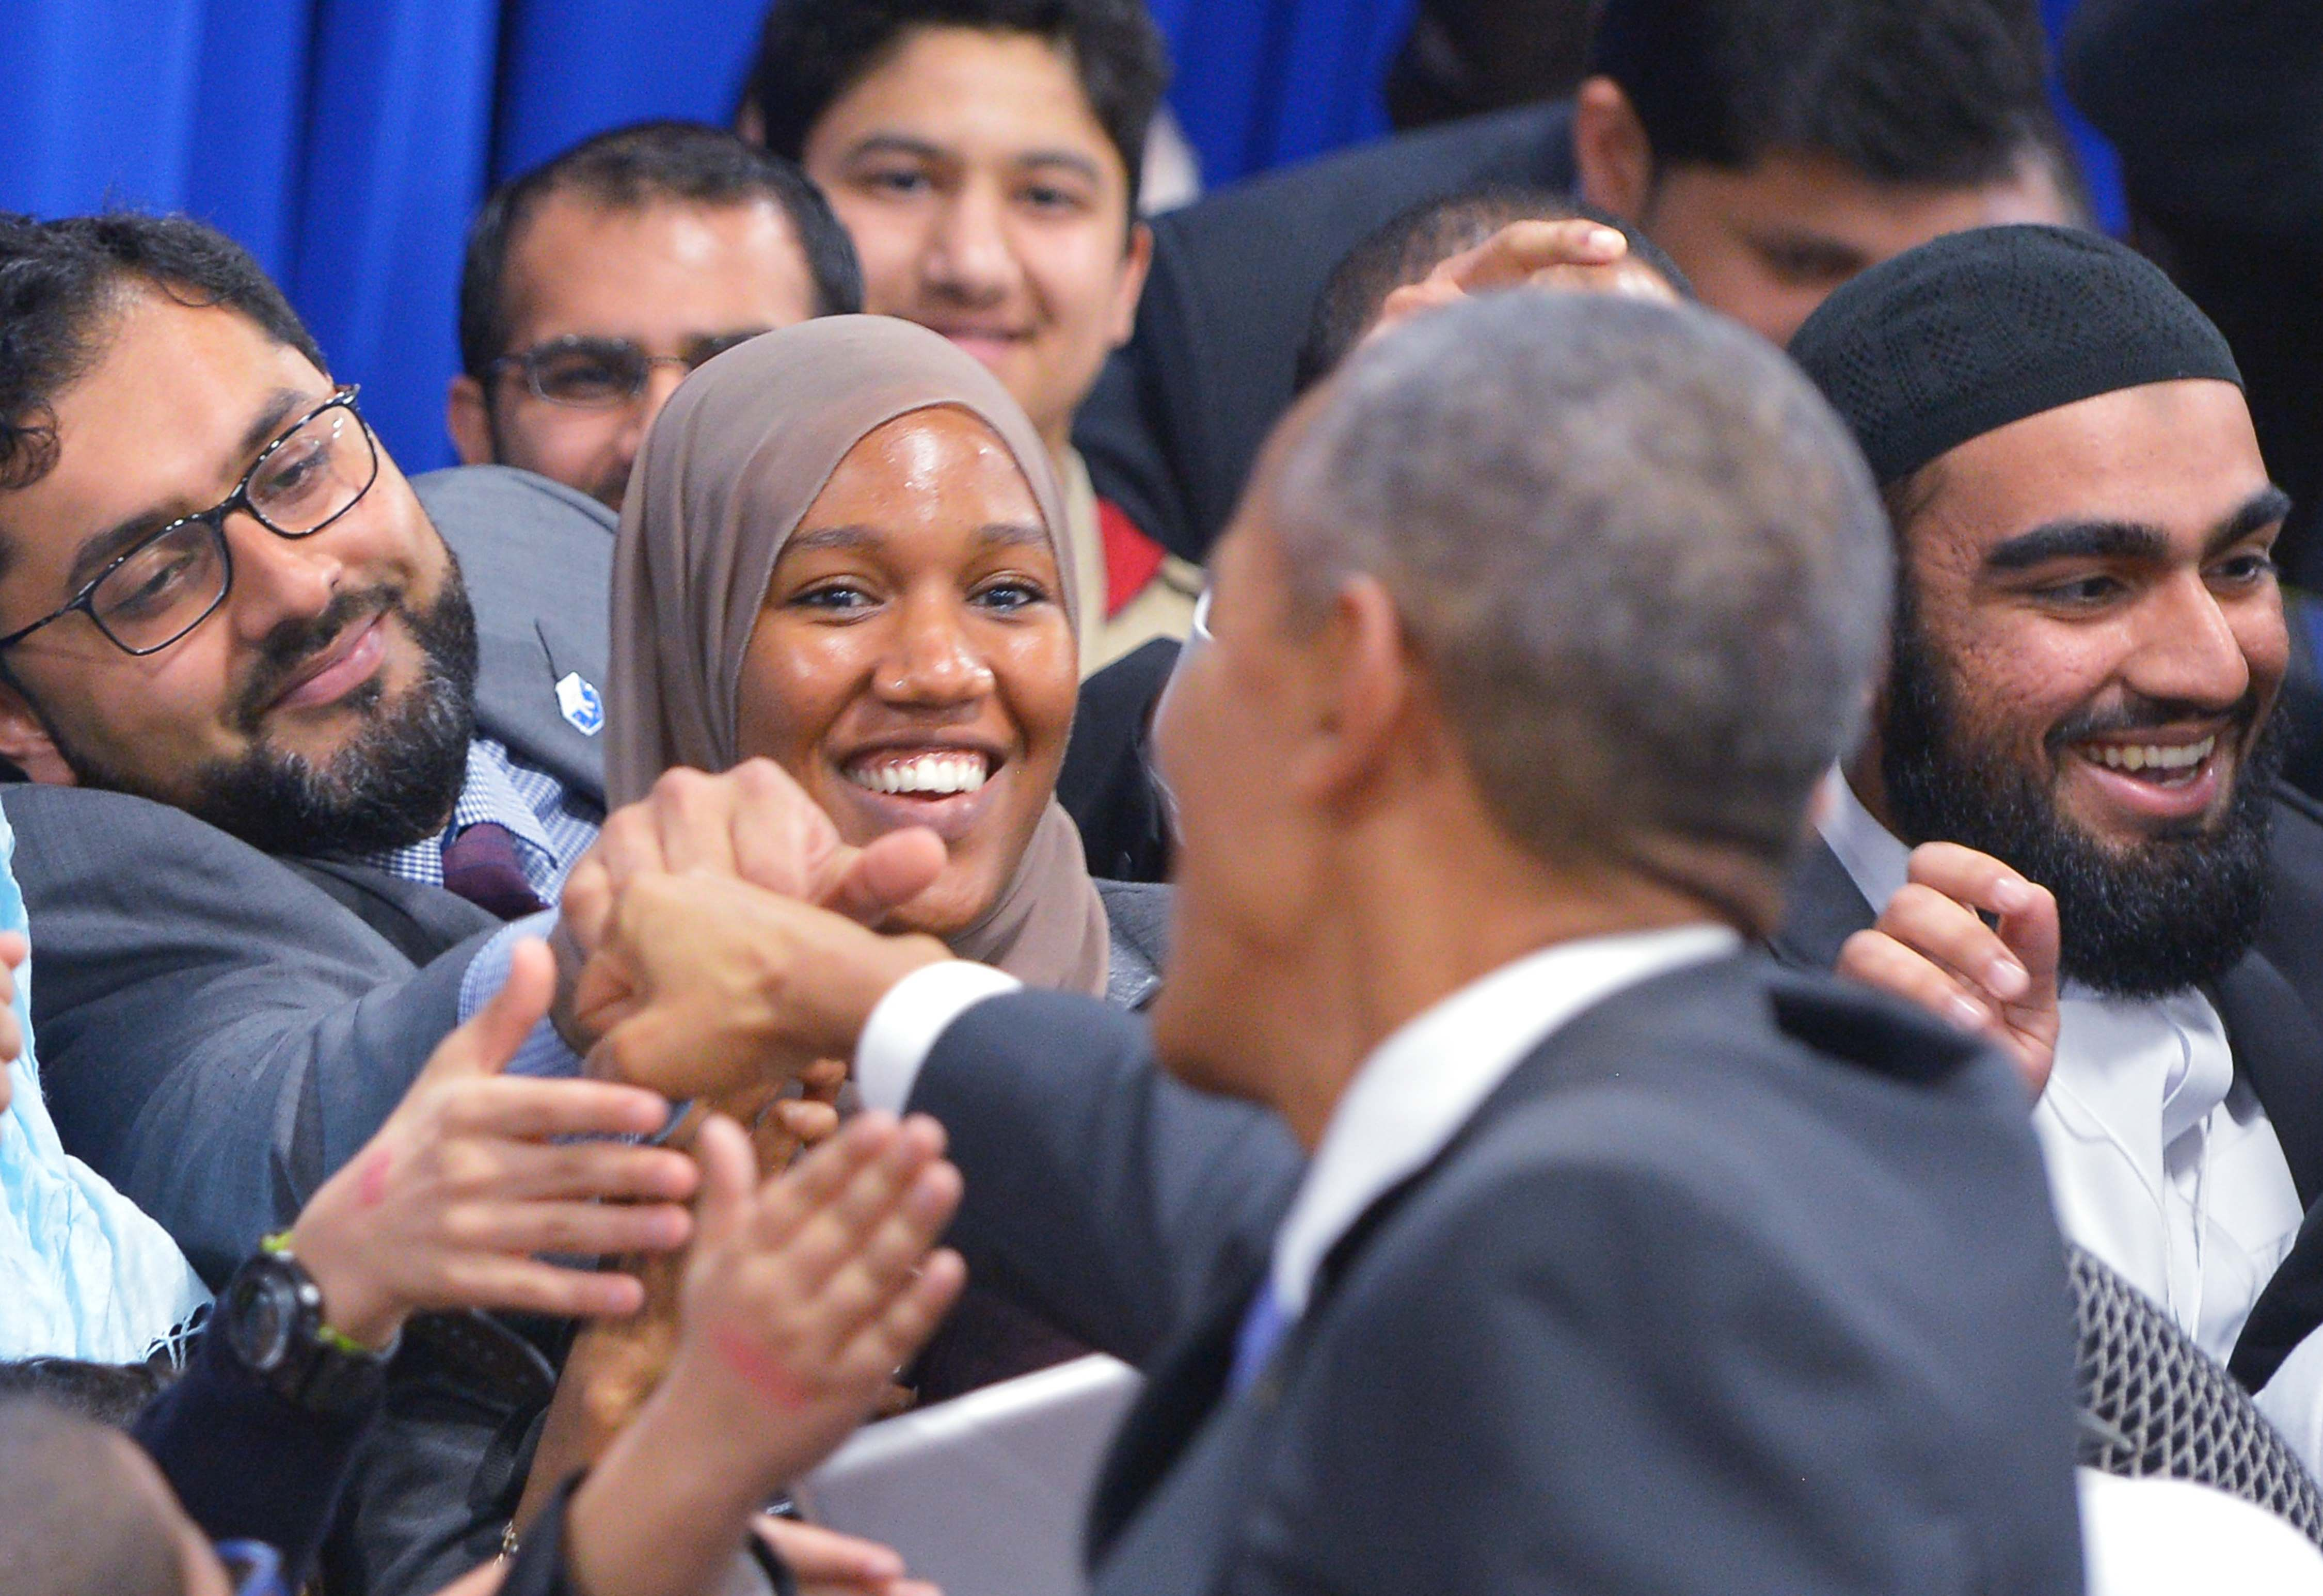 US President Barack Obama greets attendees in an overflow room after speaking at the Islamic Society of Baltimore, in Windsor Mill, Maryland,on February 3, 2016. / AFP / MANDEL NGAN        (Photo credit should read MANDEL NGAN/AFP/Getty Images)